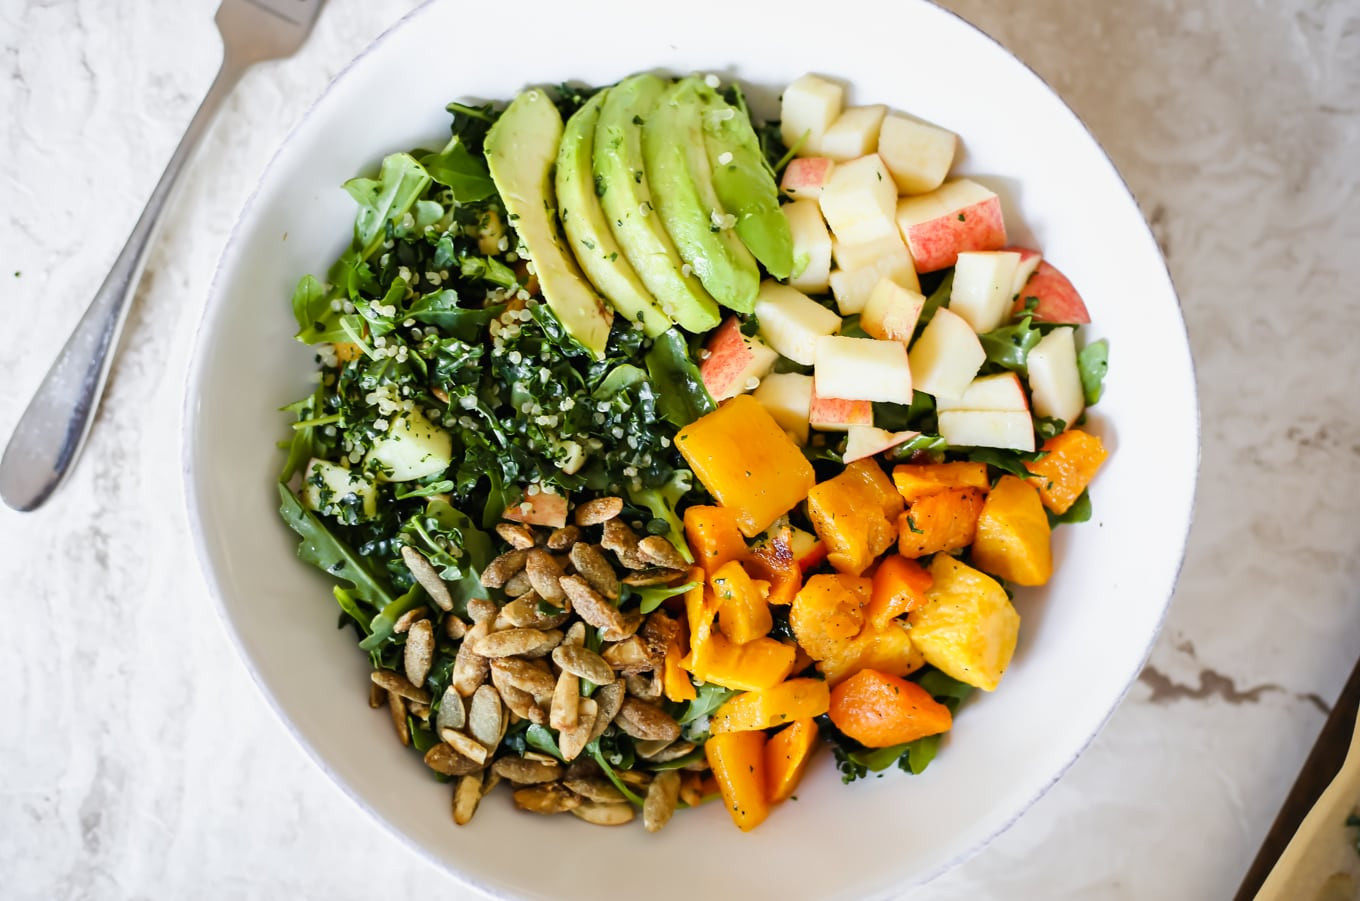 A Fall Power Salad with Butternut Squash, Apples, & Orange Bitters Dressing